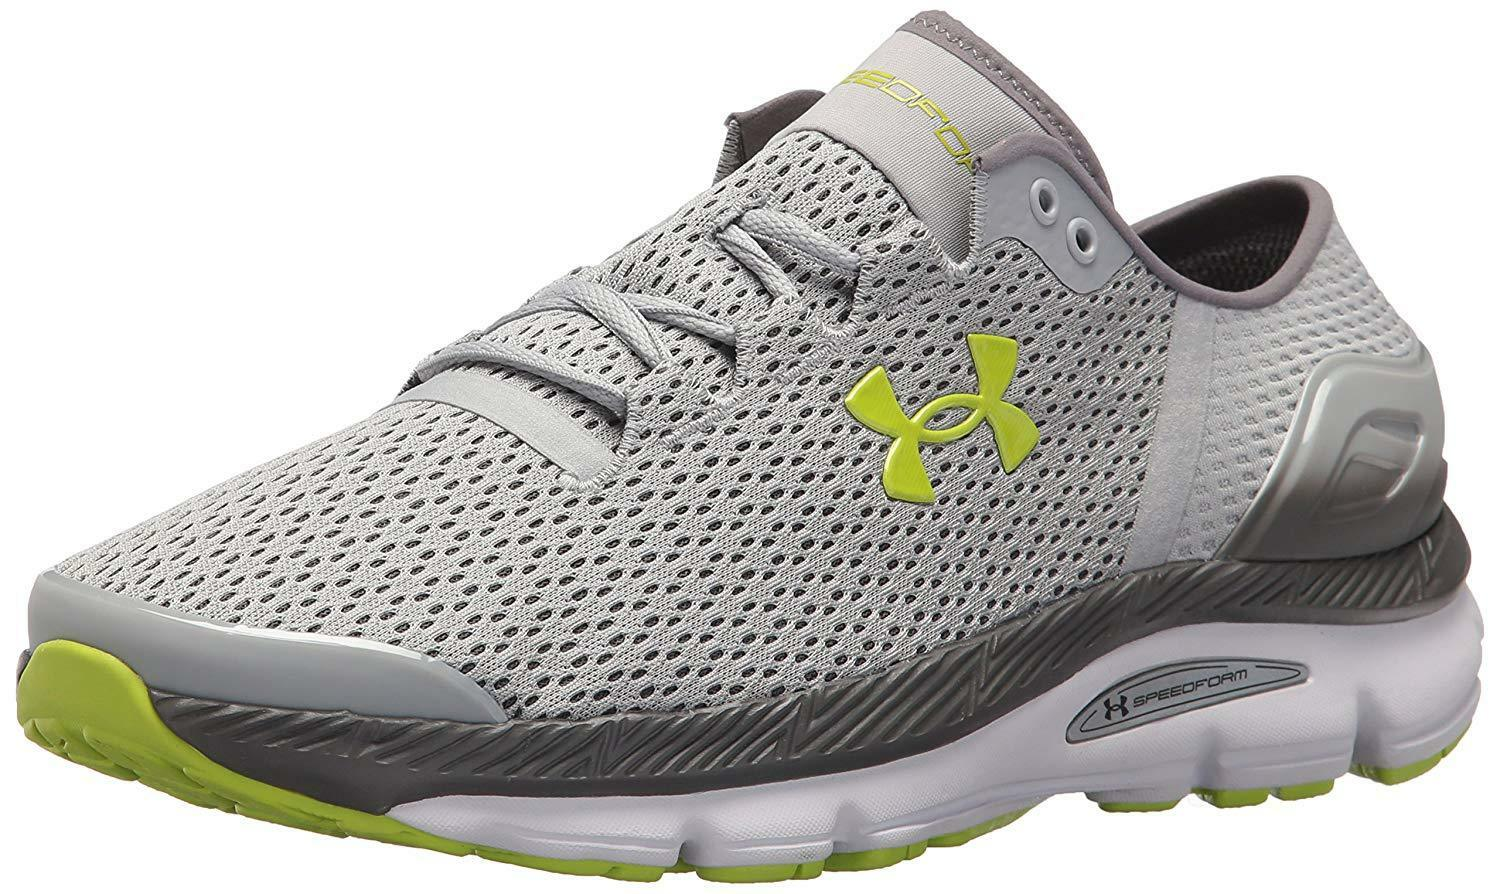 Under Armour Men's Speedform Intake 2